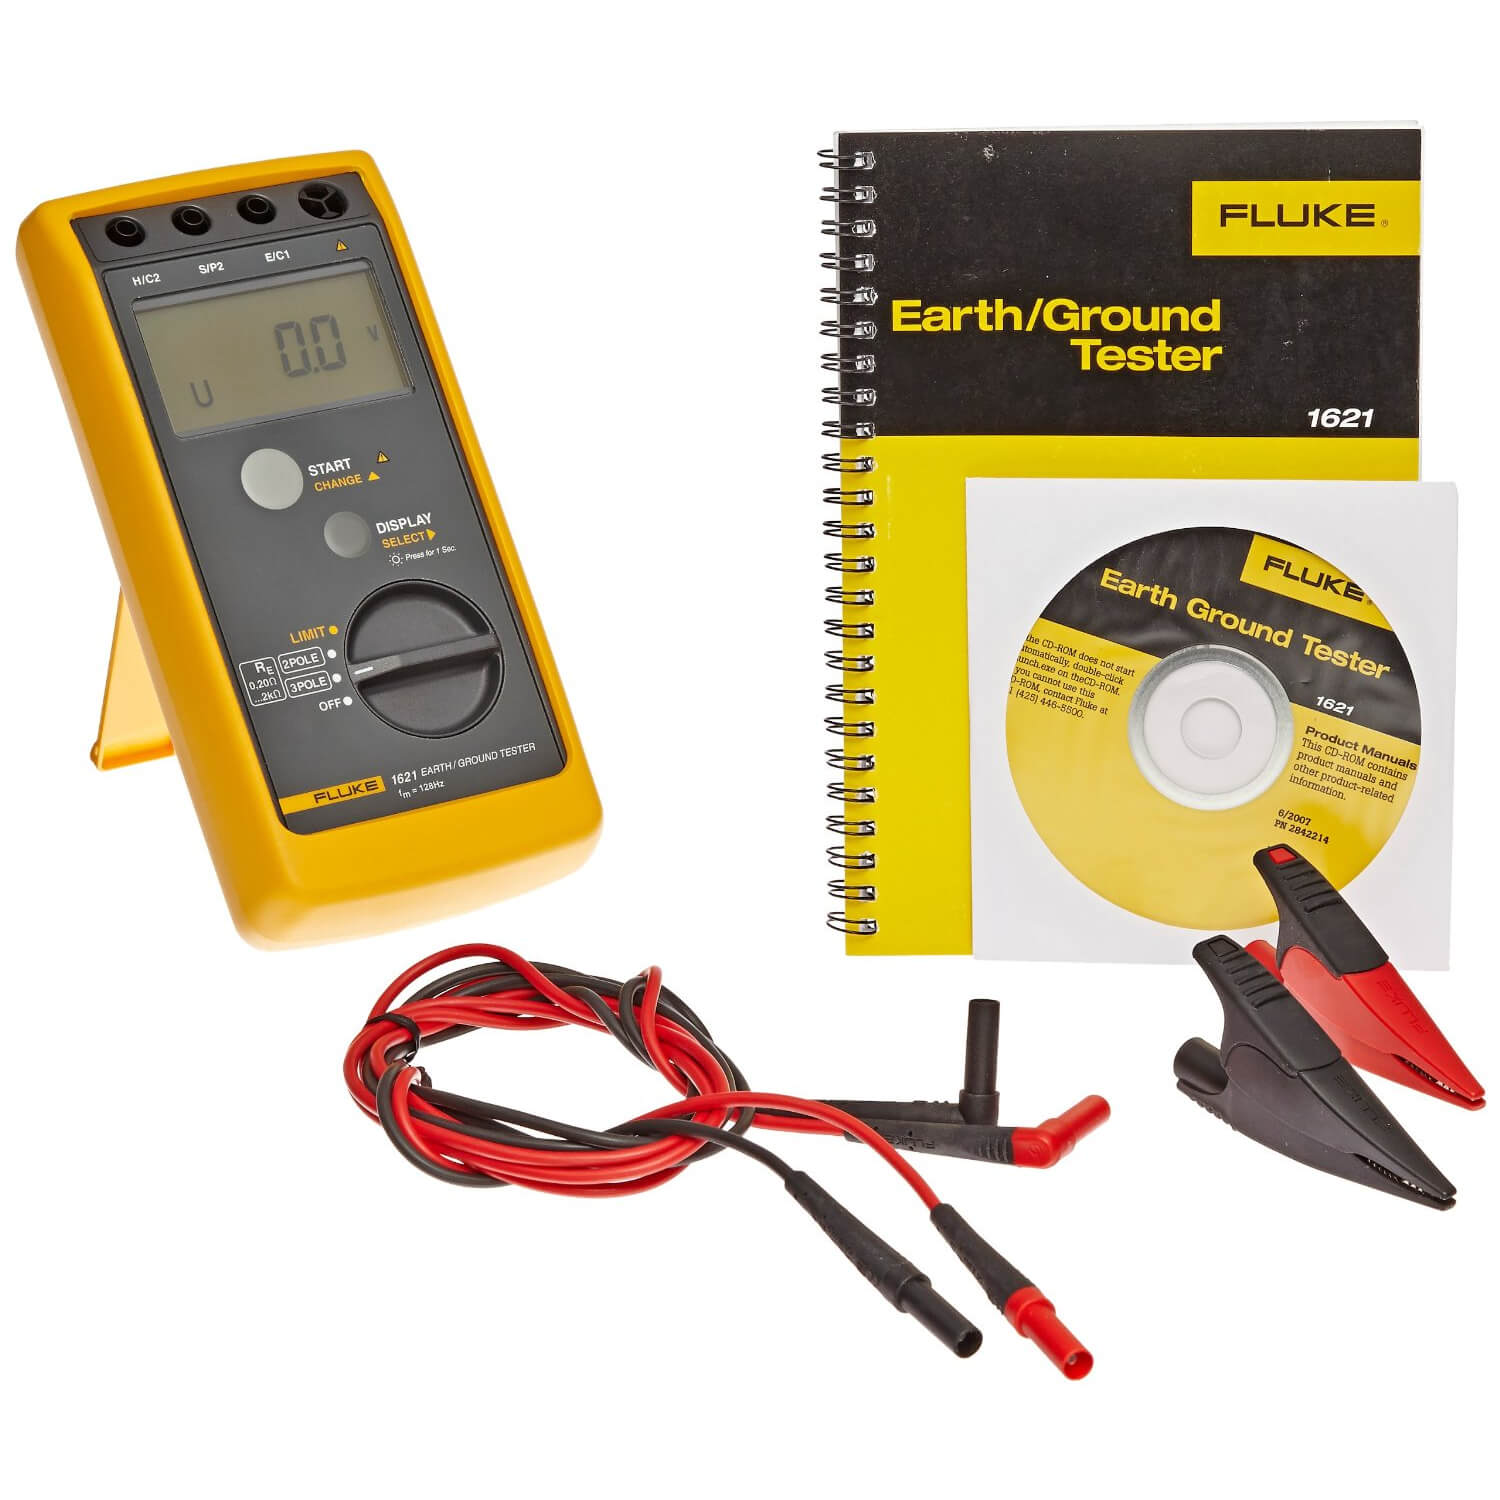 Ground Impedance Tester : Fluke basic earth ground tester